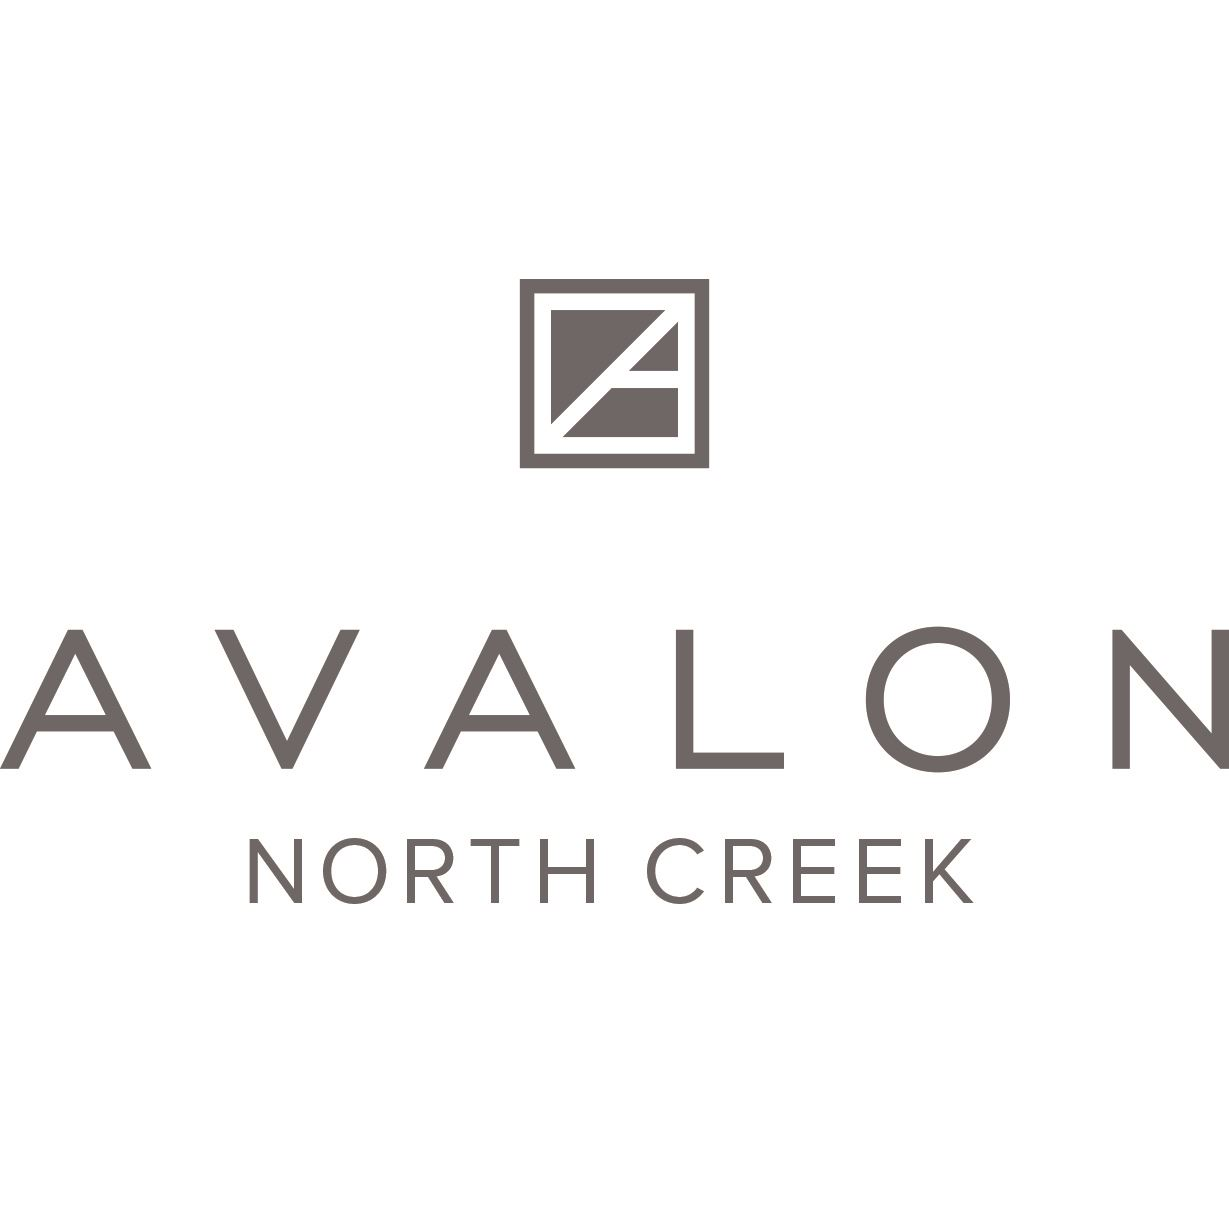 Avalon North Creek logo